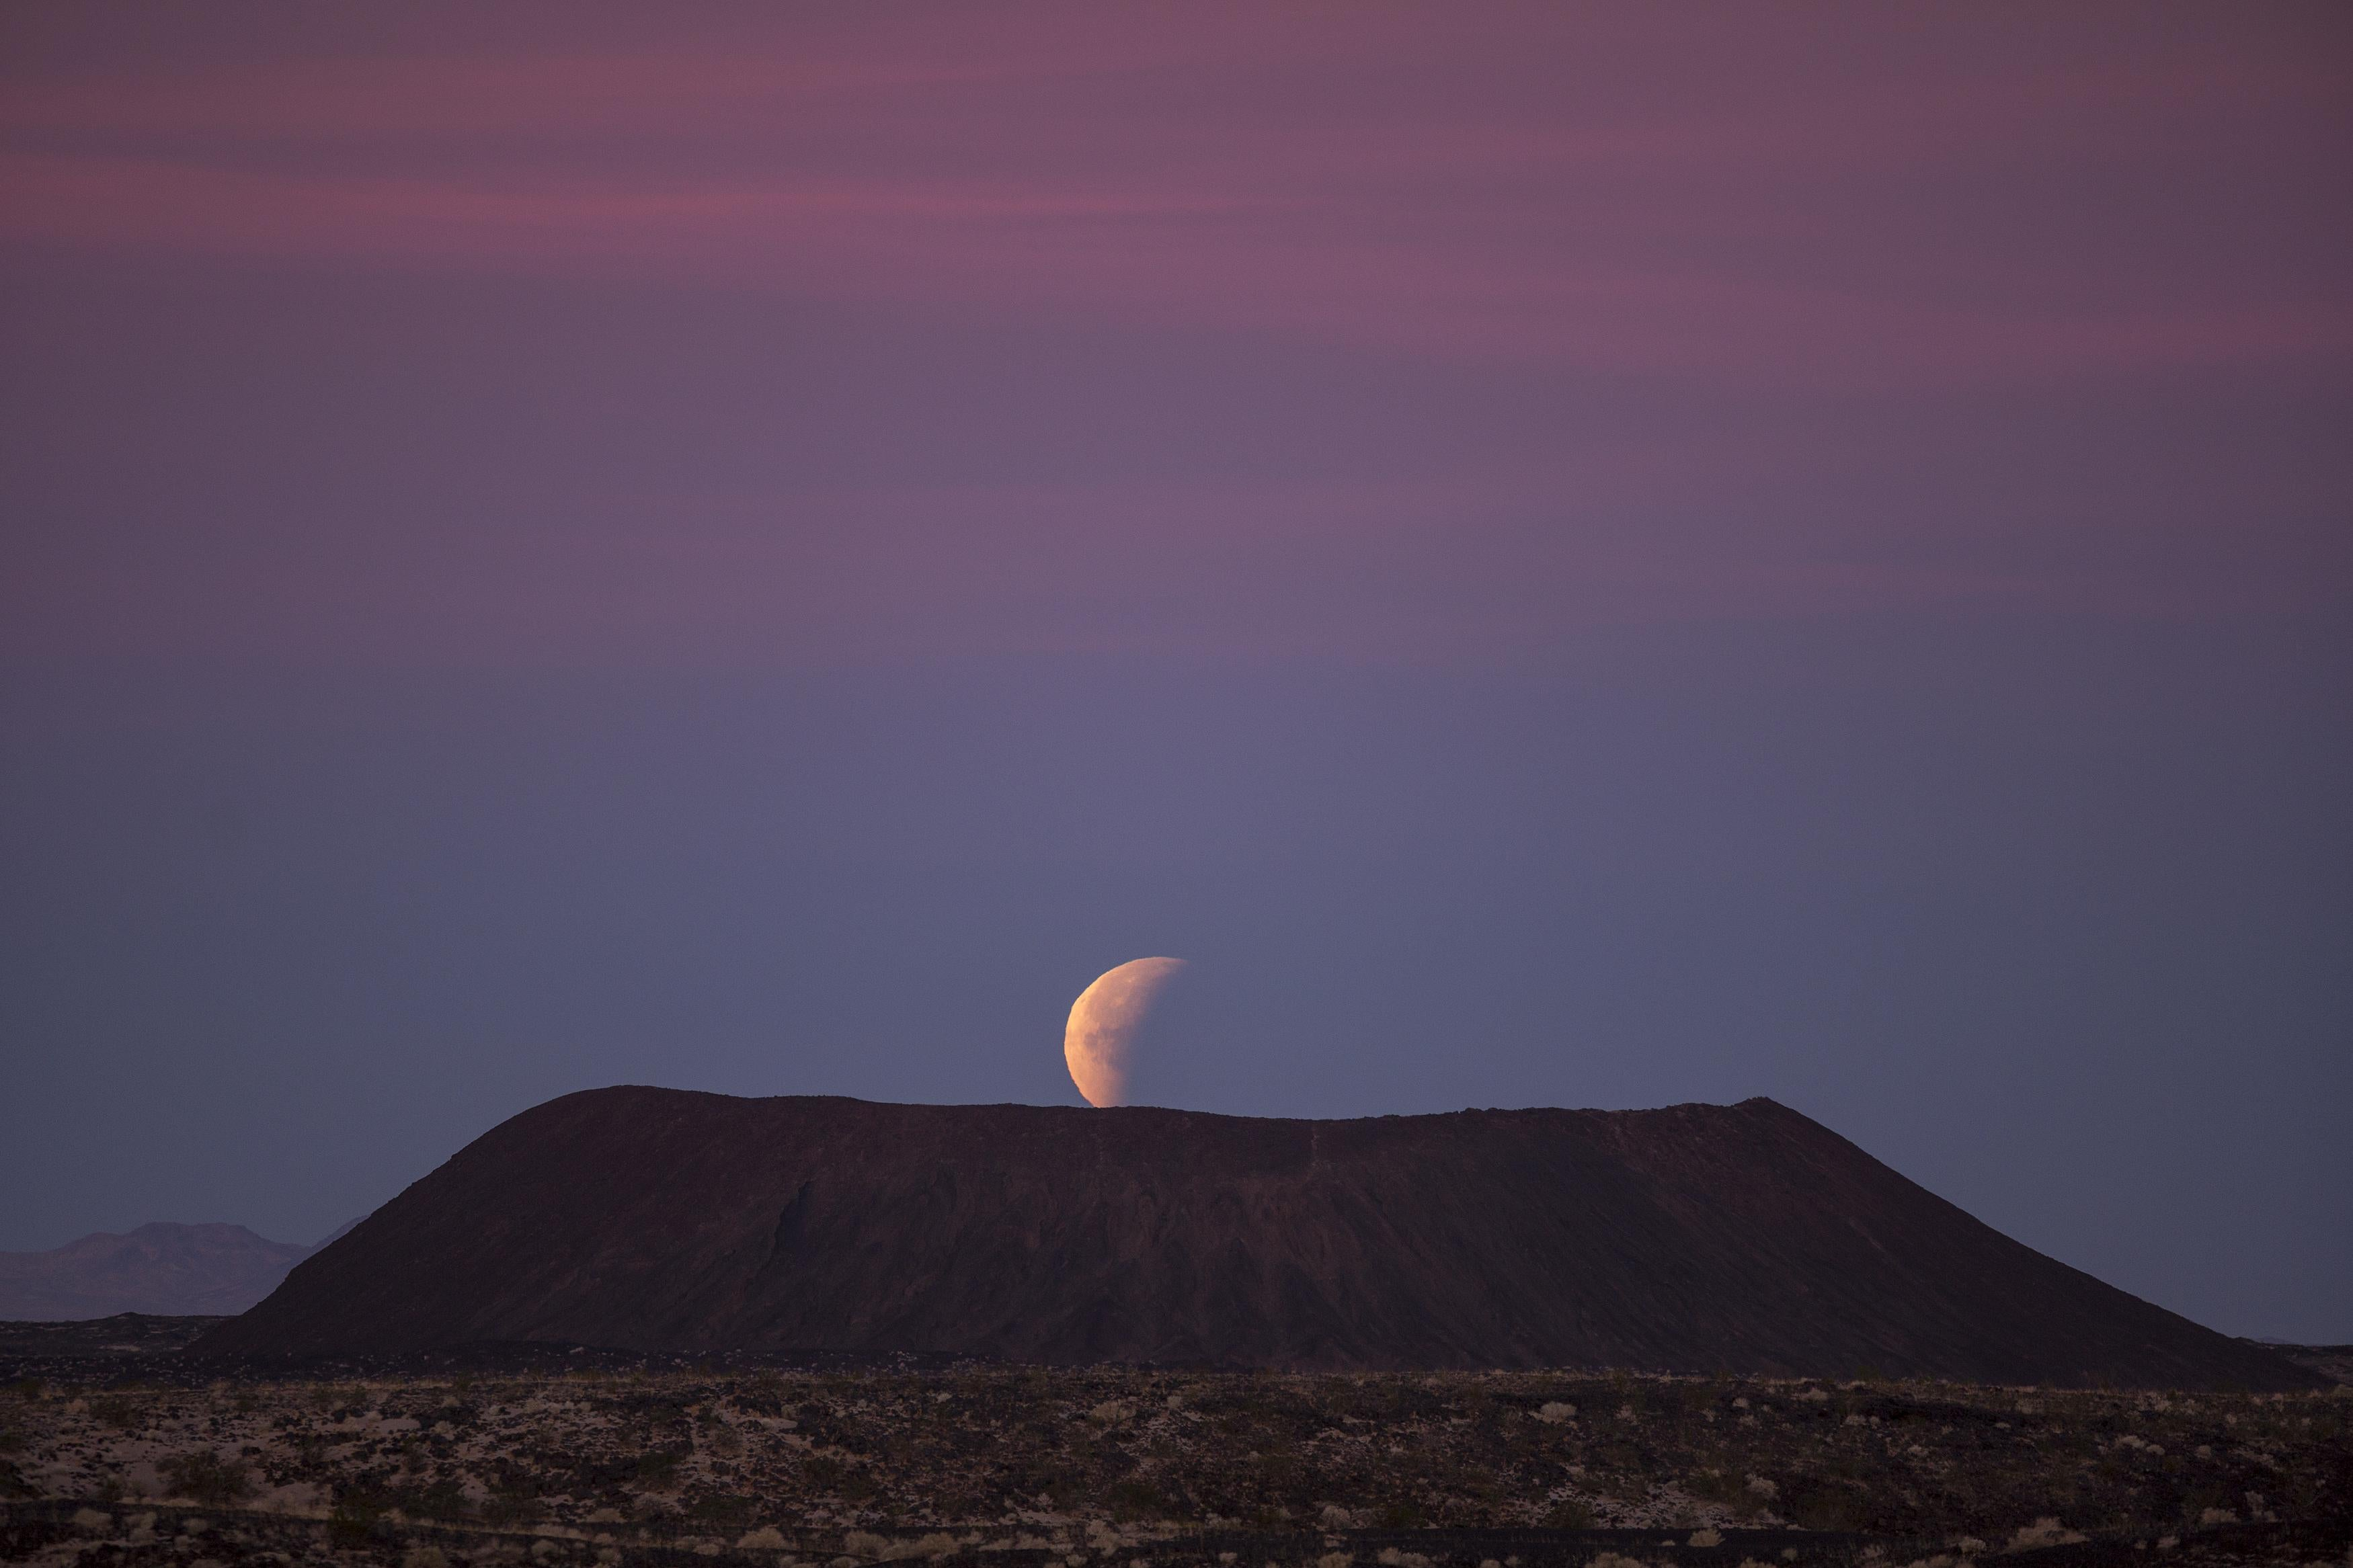 A so-called super blue blood moon sets behind Amboy Crater in the Mojave Desert.